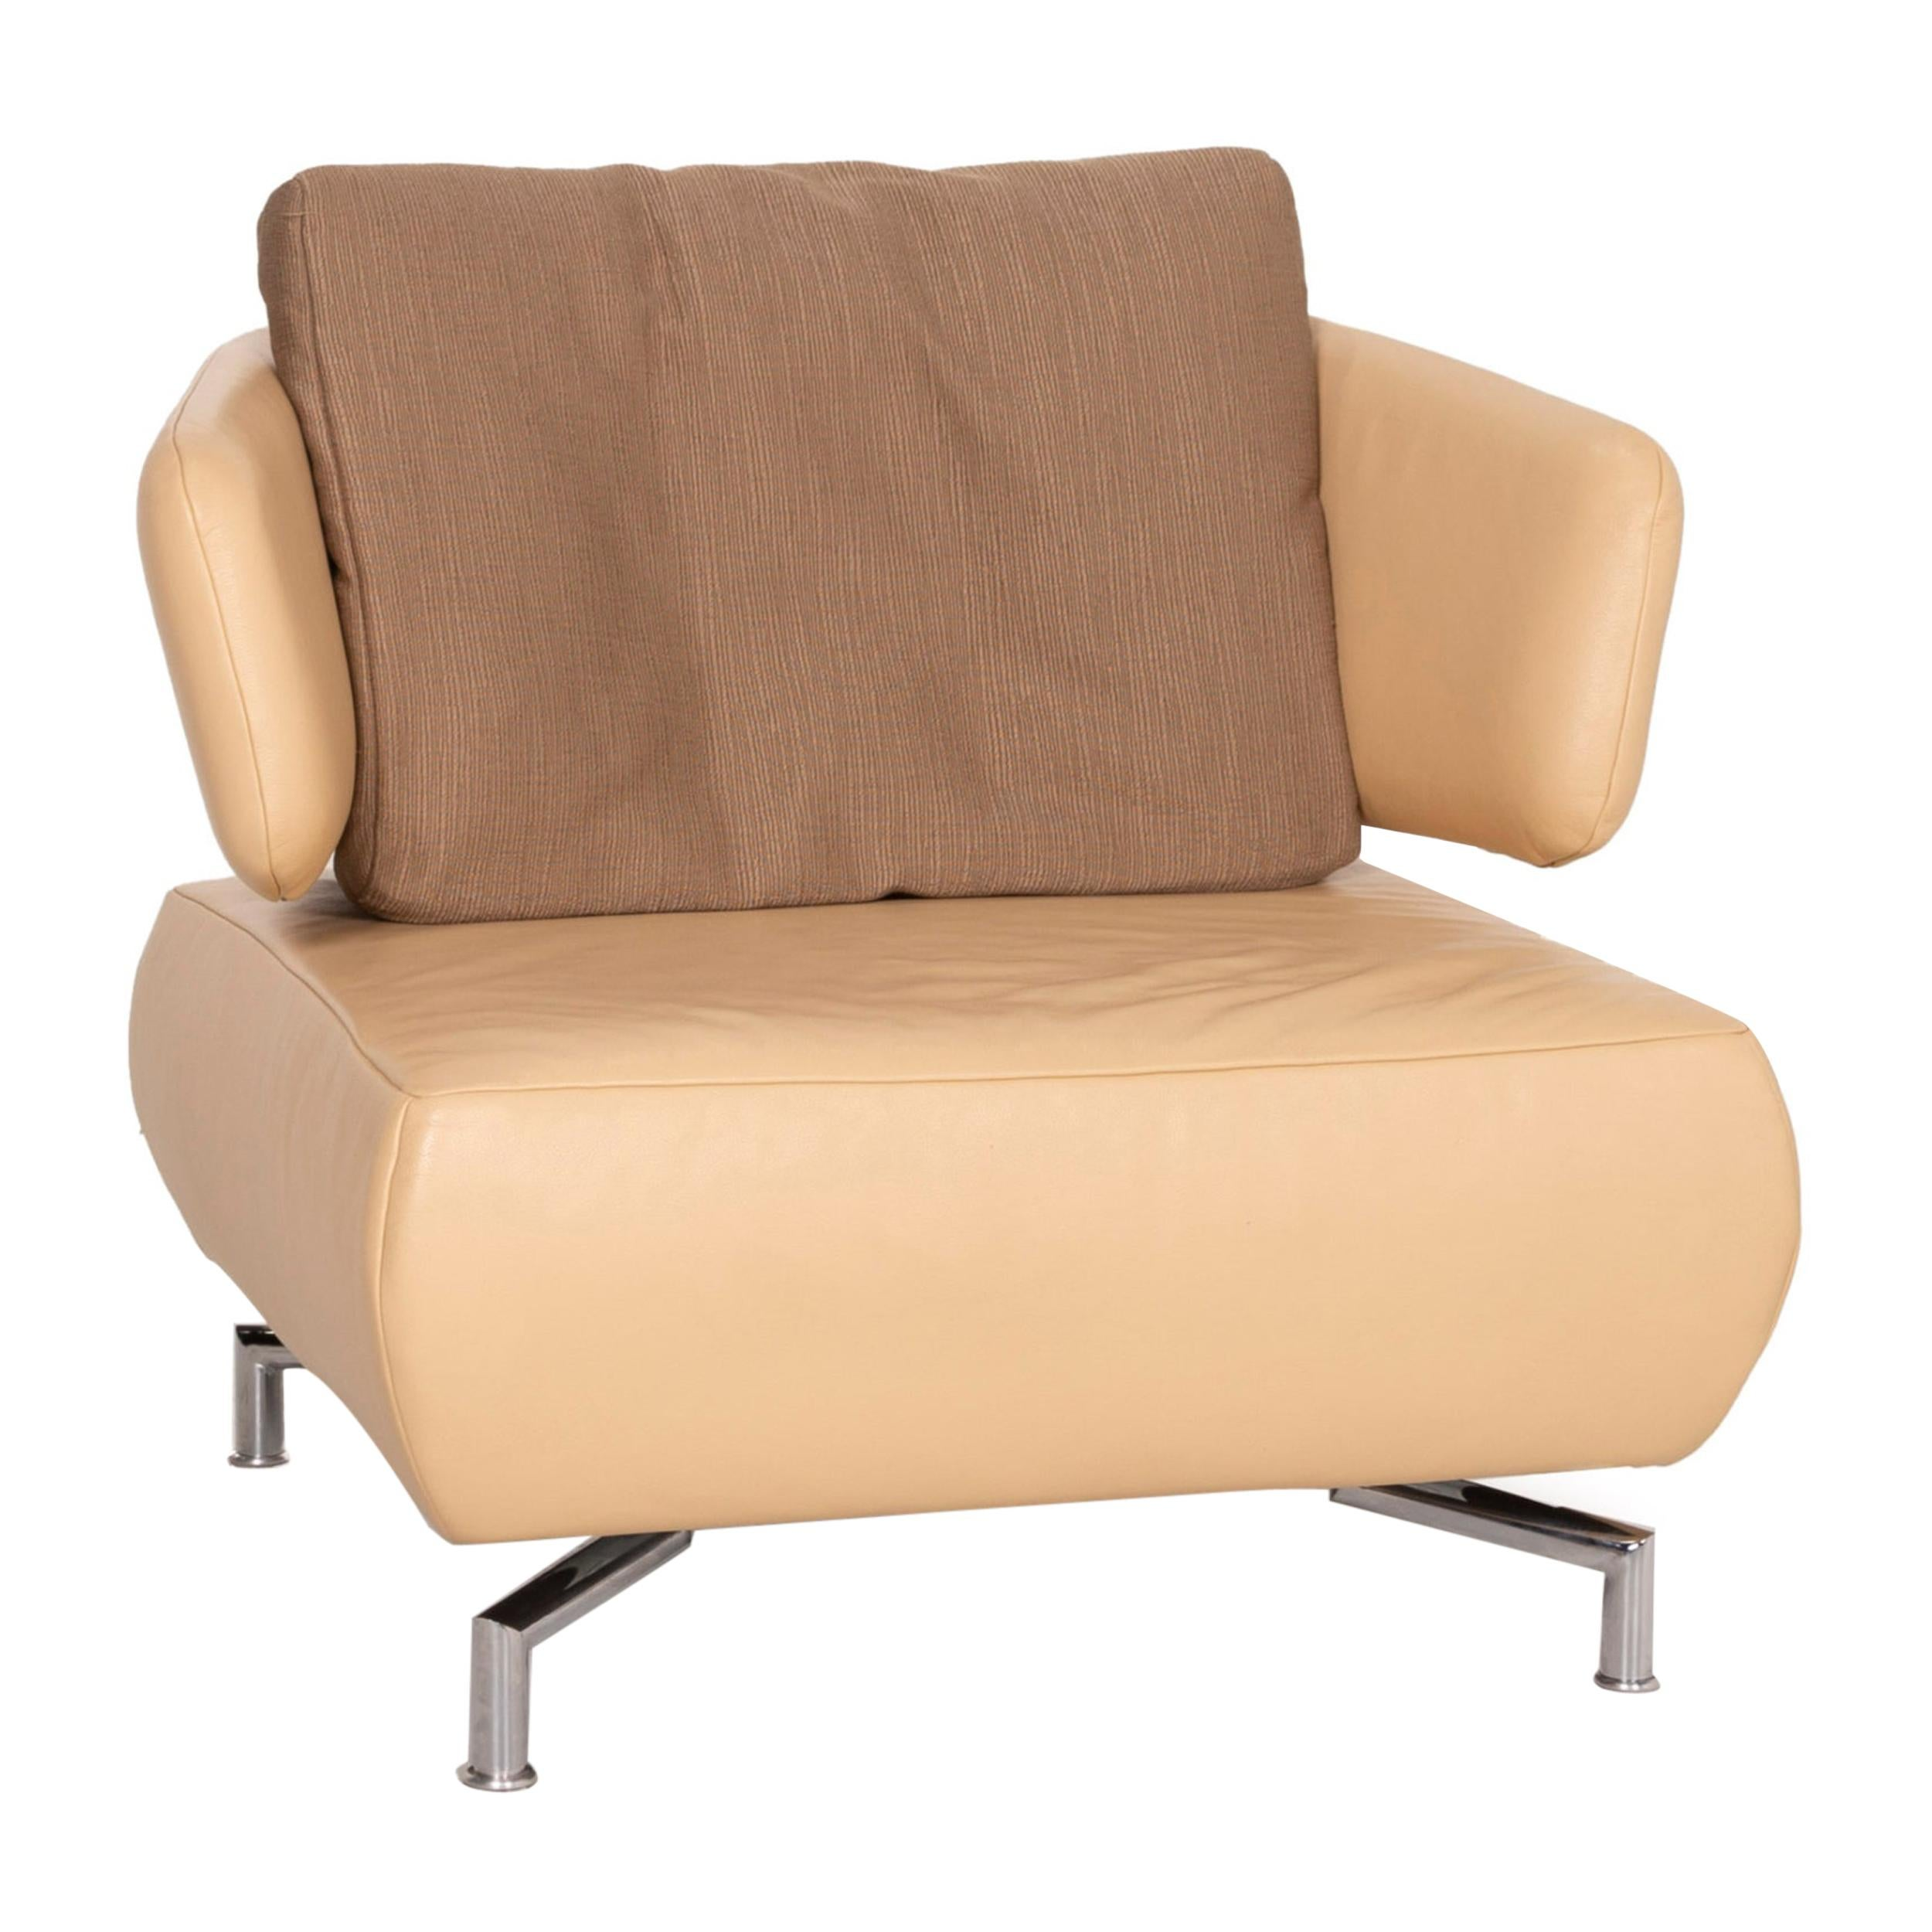 Koinor Leather Armchair in Beige Fabric